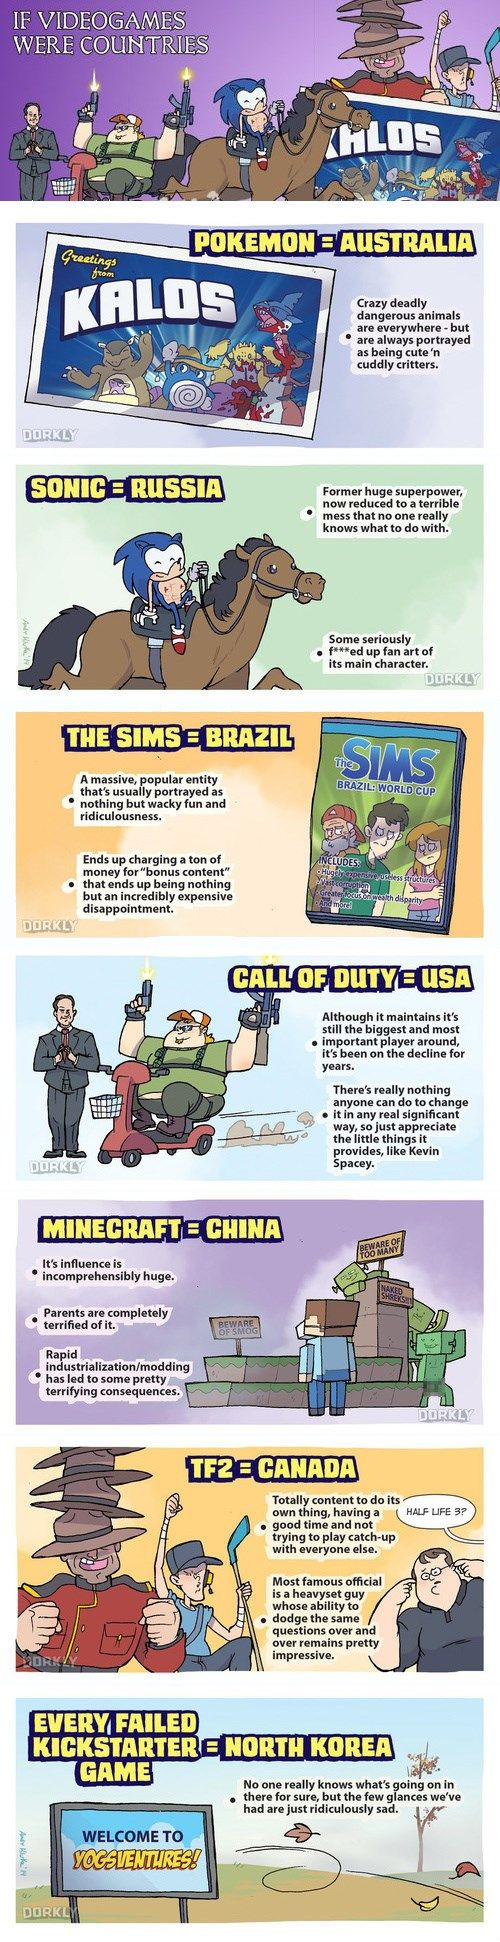 If Video Games Were Countries